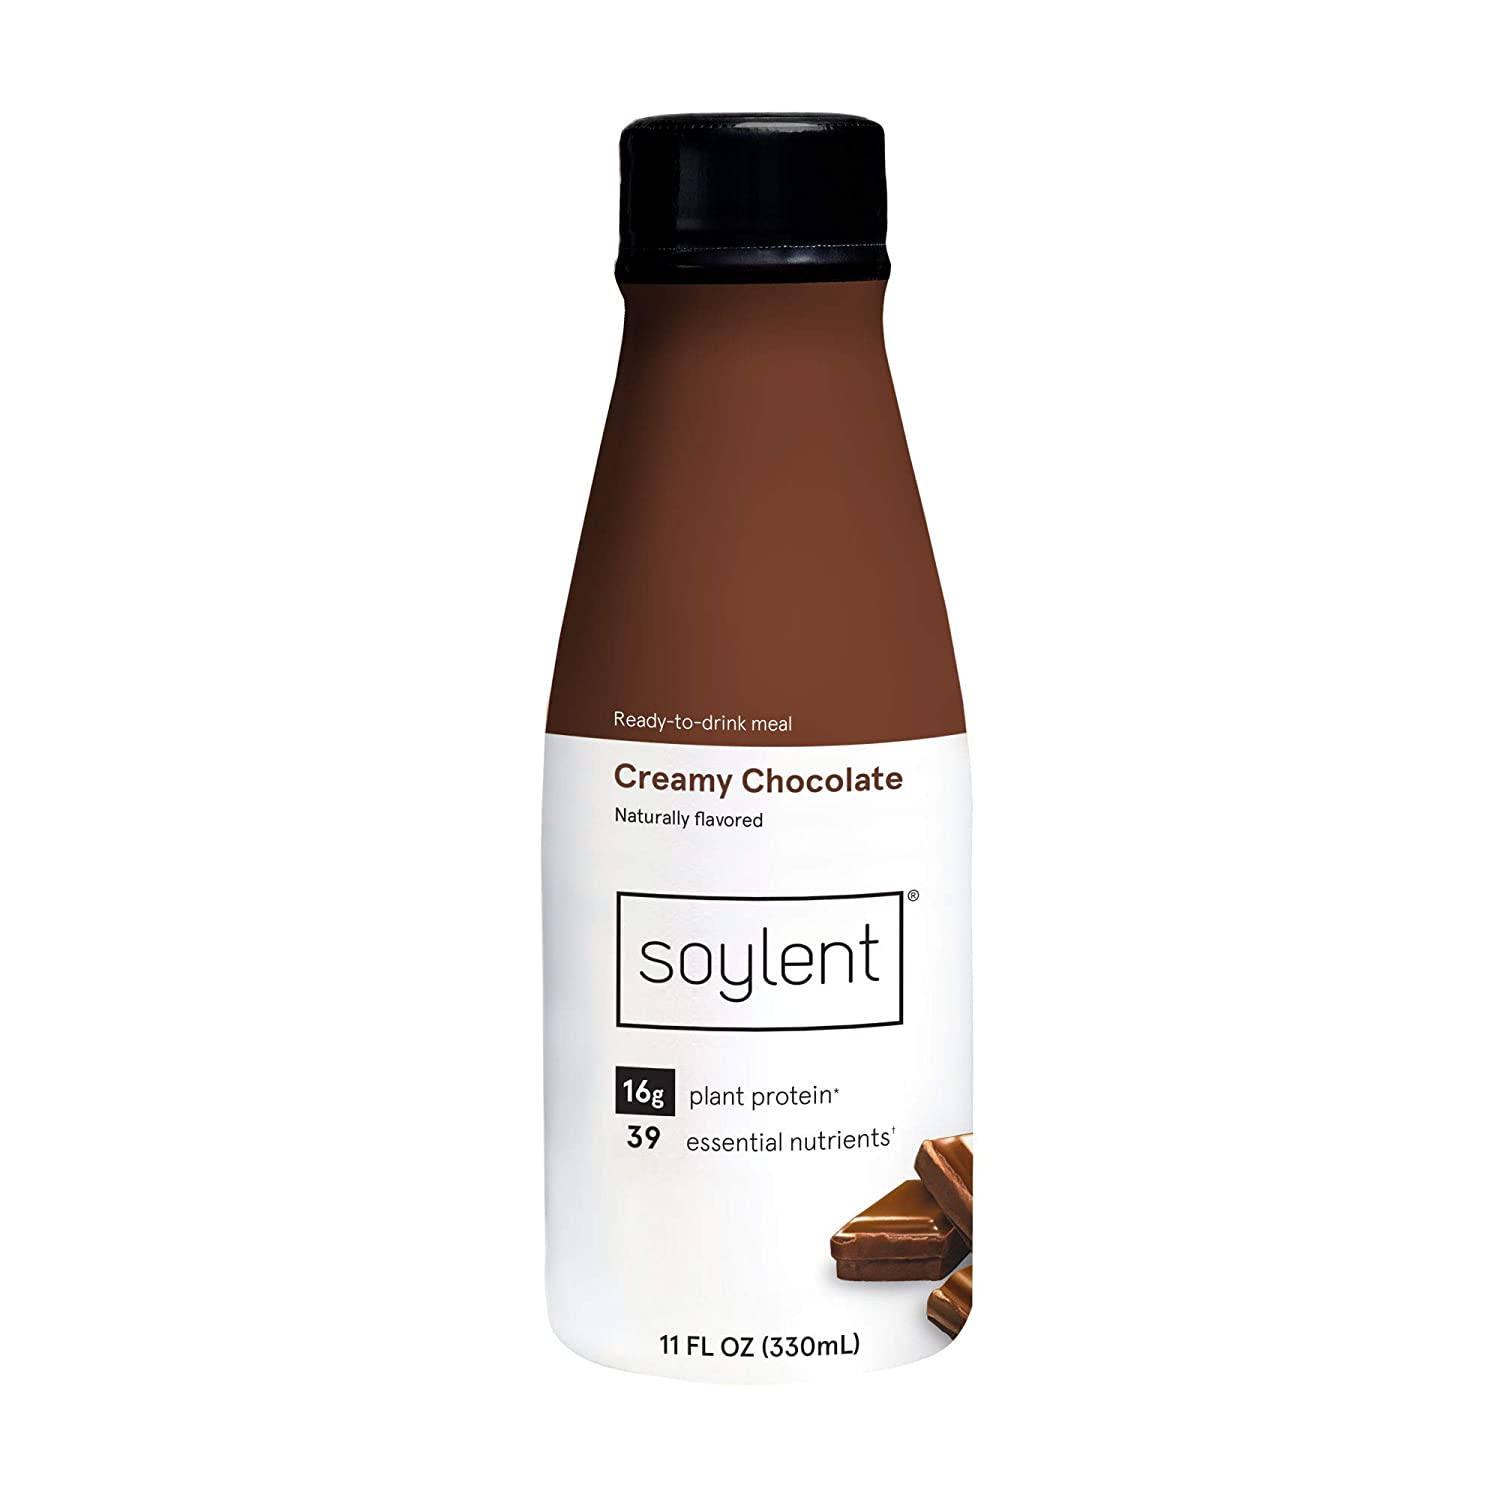 Soylent Creamy Chocolate/Cacao Plant Protein Meal Replacement Shake, 11 Fl Oz, 4 Bottles - Packaging and Flavor May Vary